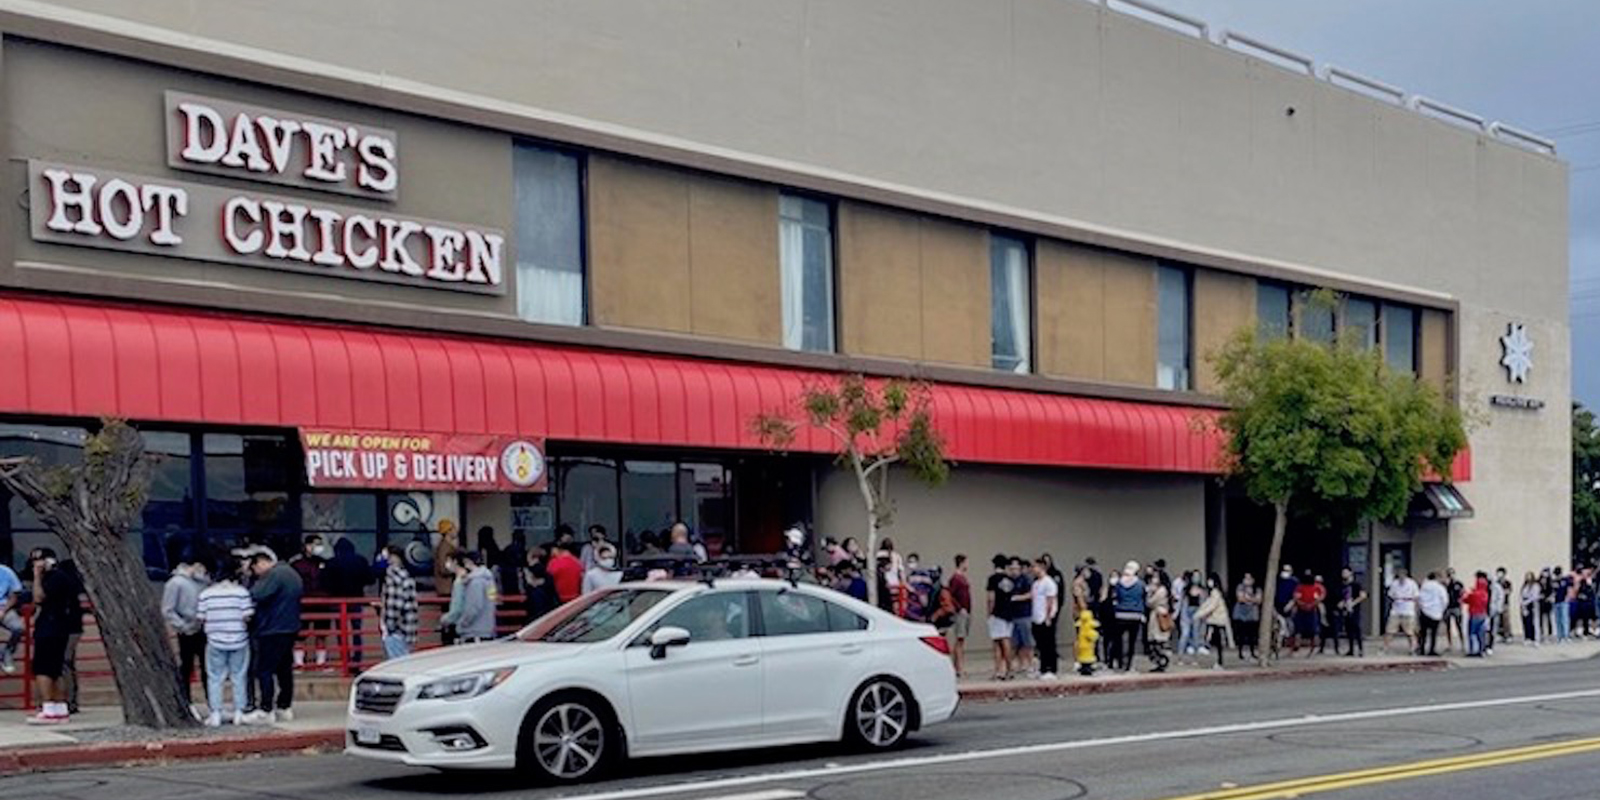 People waiting in line outside of Dave's Hot Chicken franchise